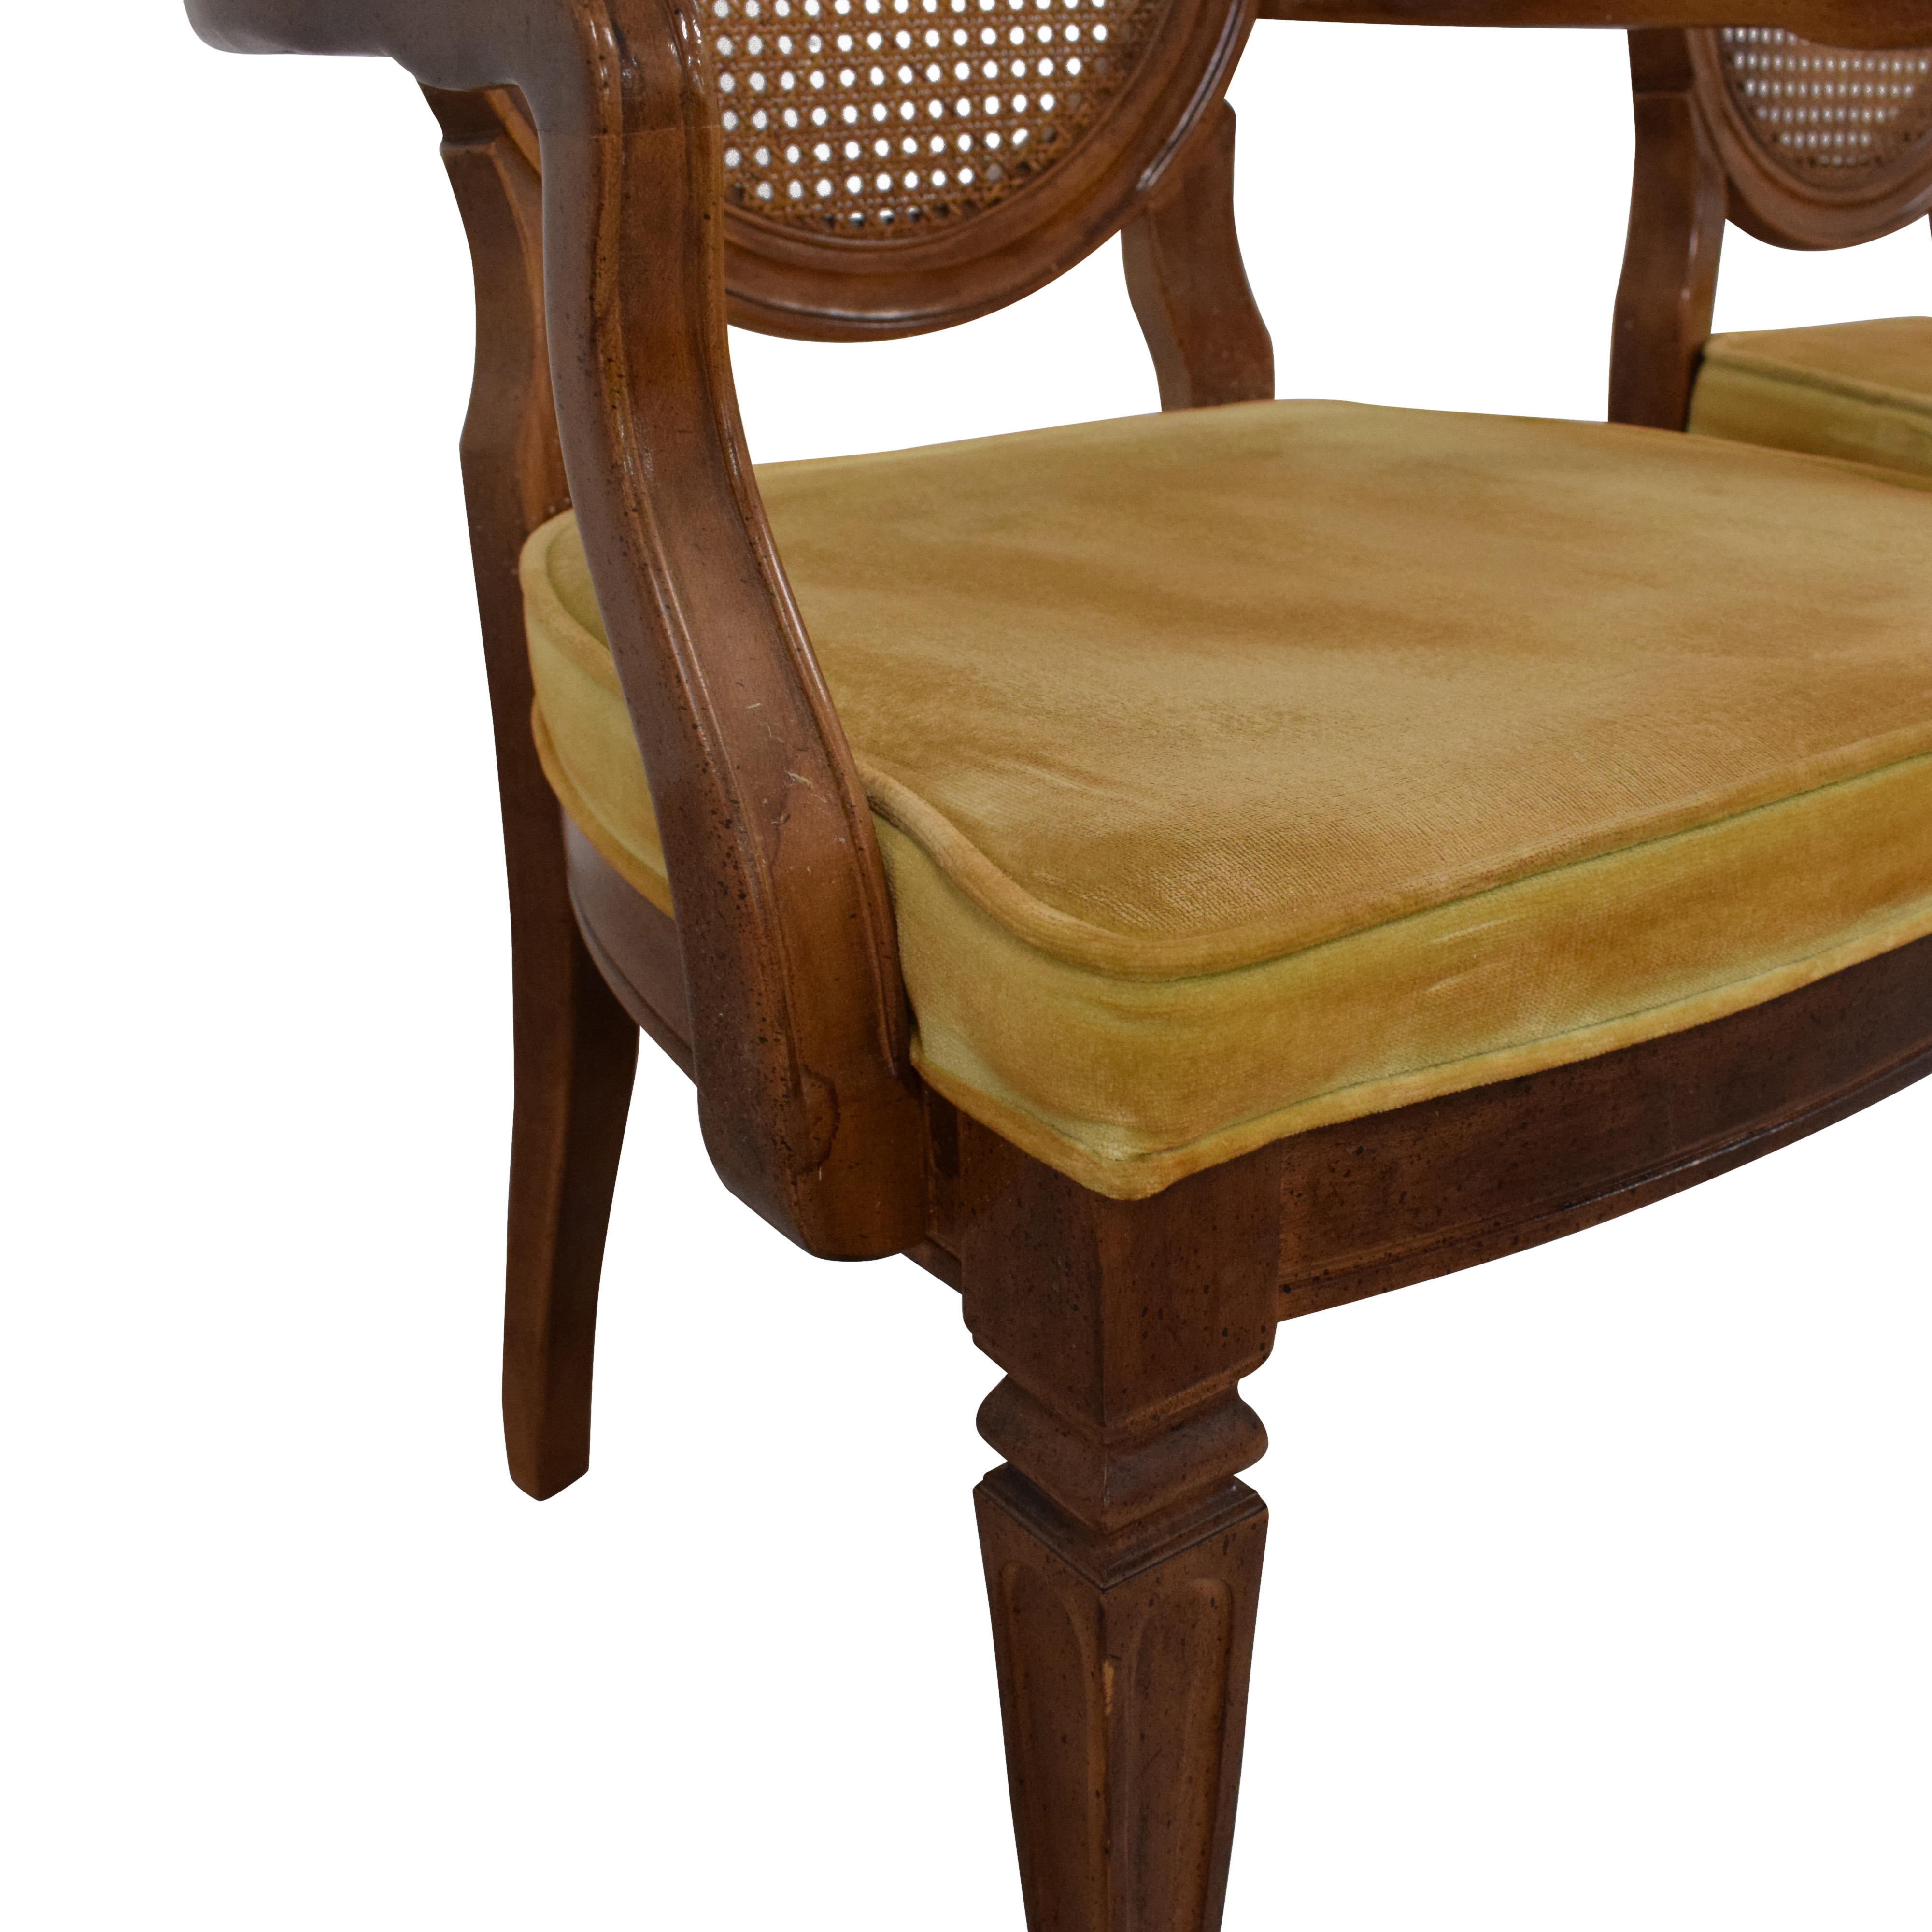 buy Thomasville Thomasville Italian Provincial Style Cane Back Dining Chairs online